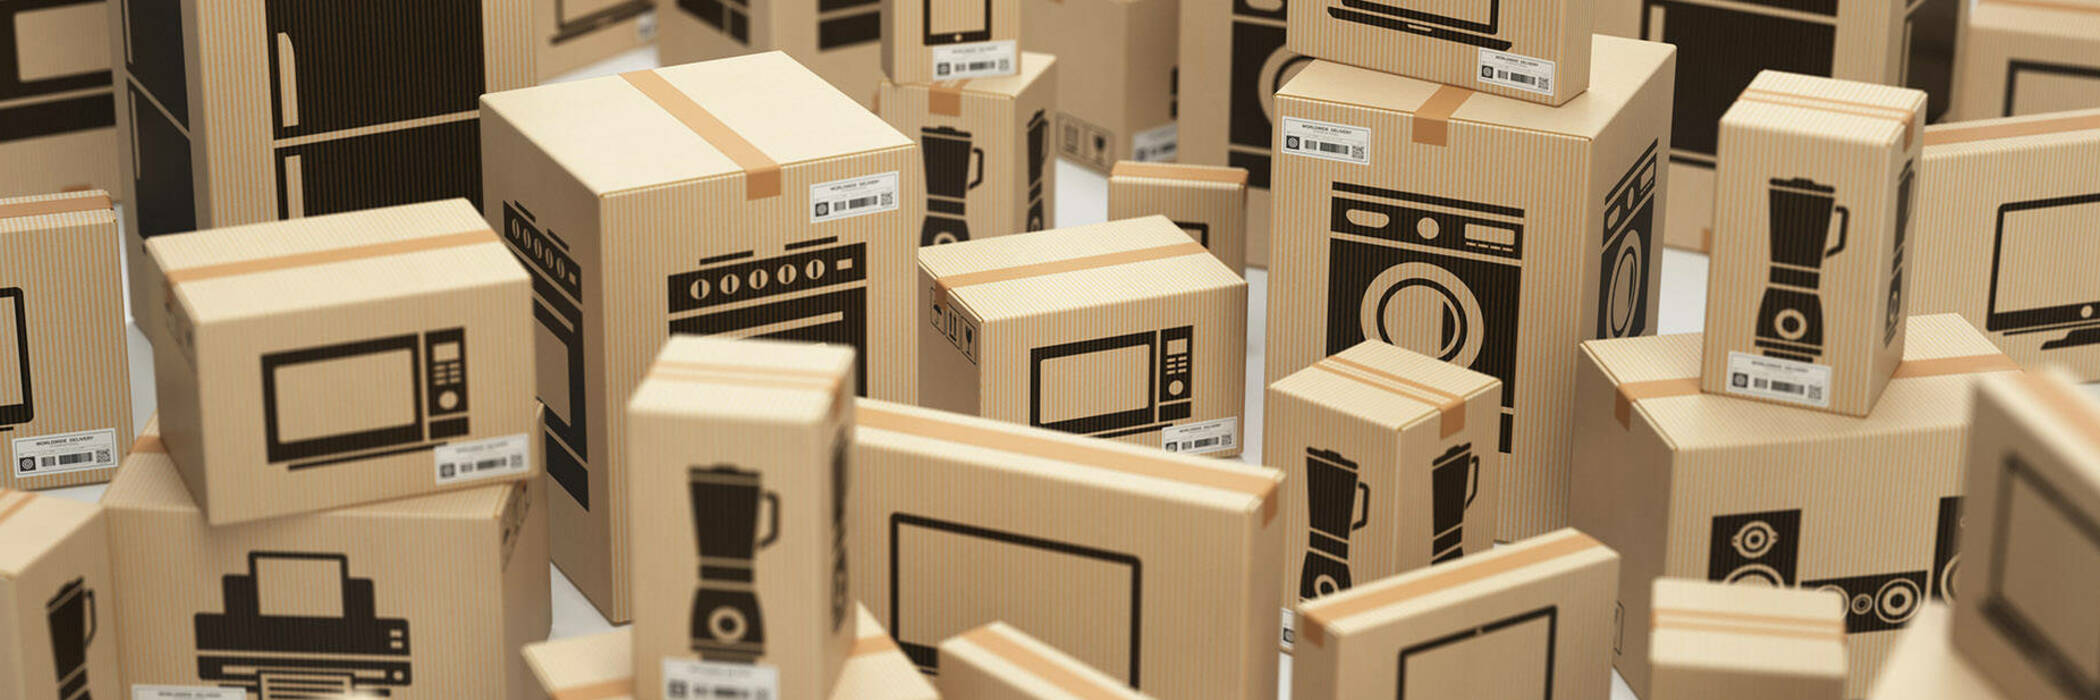 Boxes containing household appliances